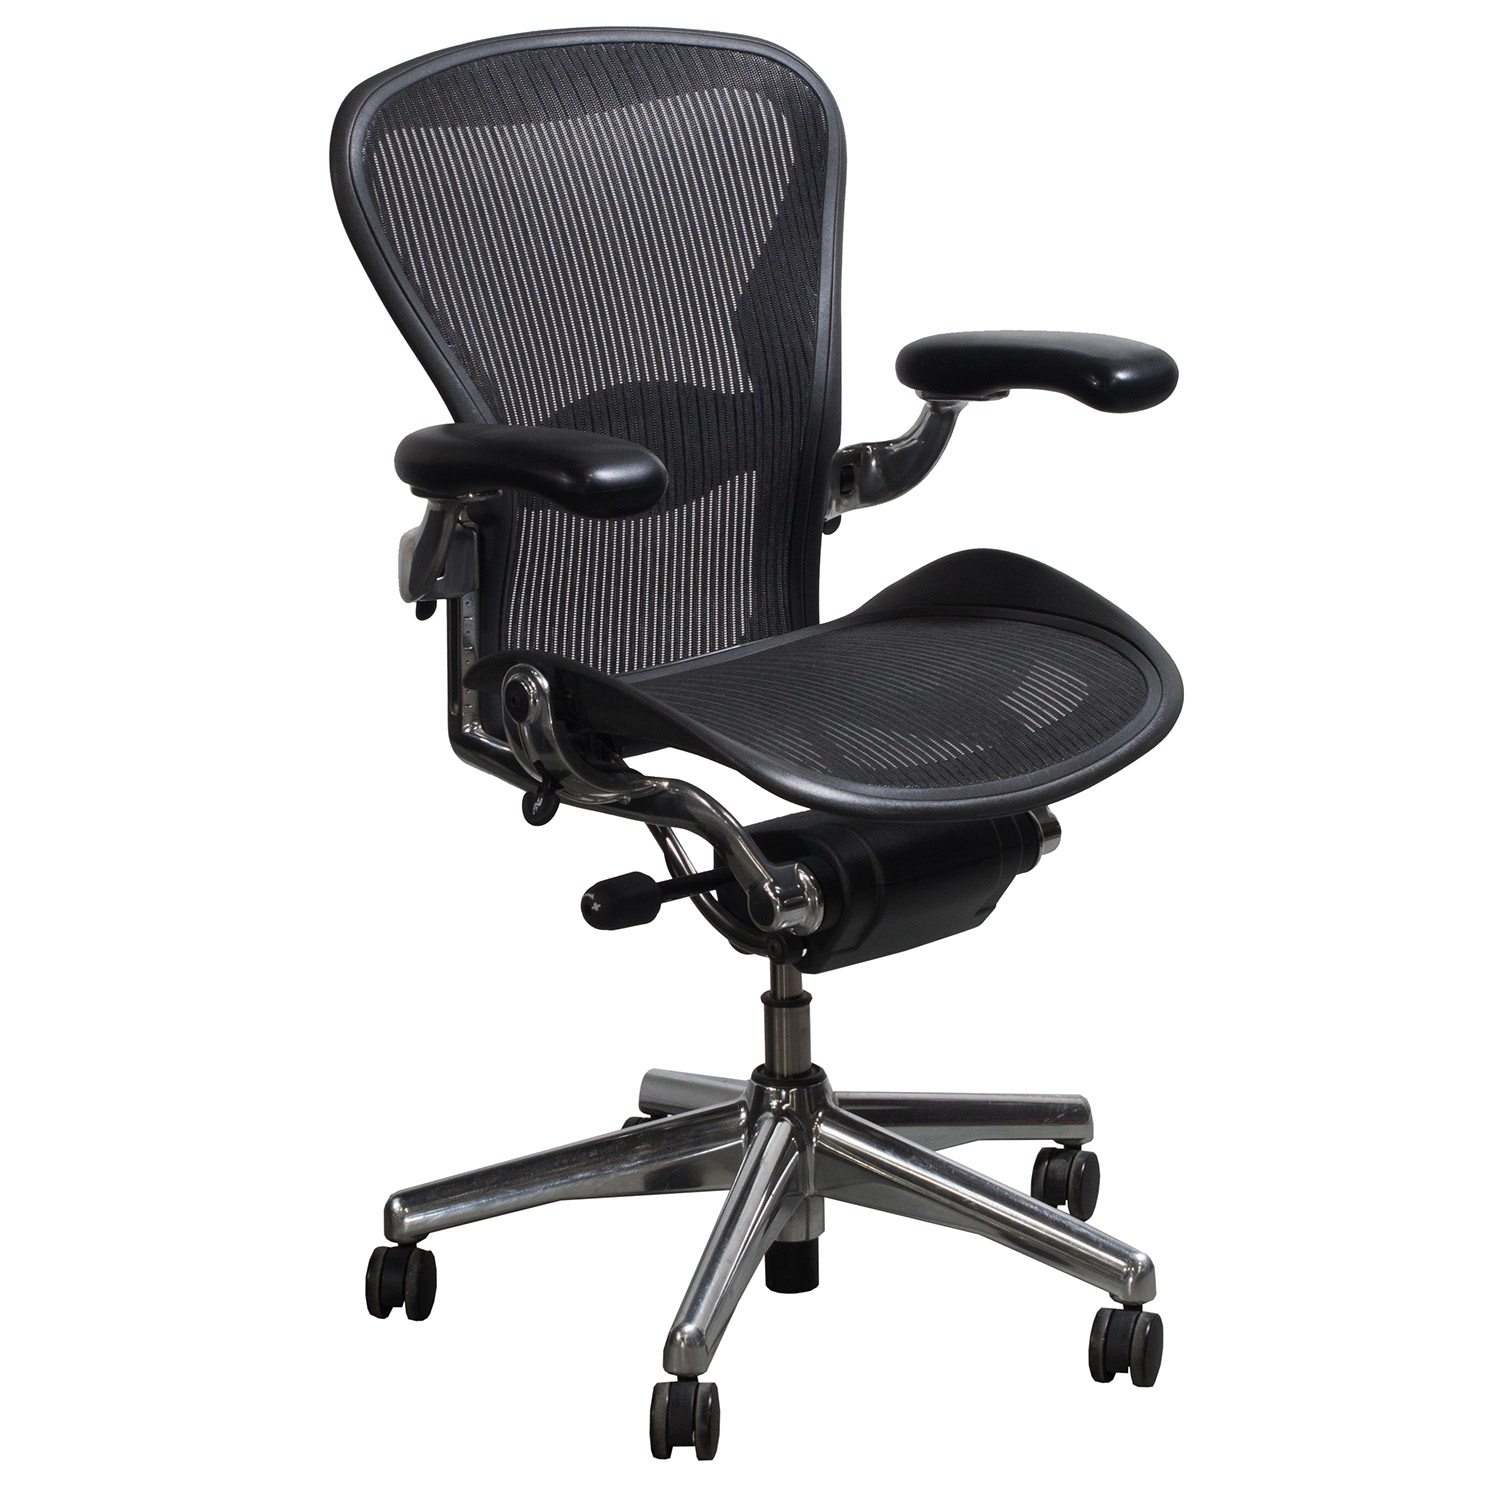 aeron chair sizes diy gaming race herman miller used aluminum base size b task